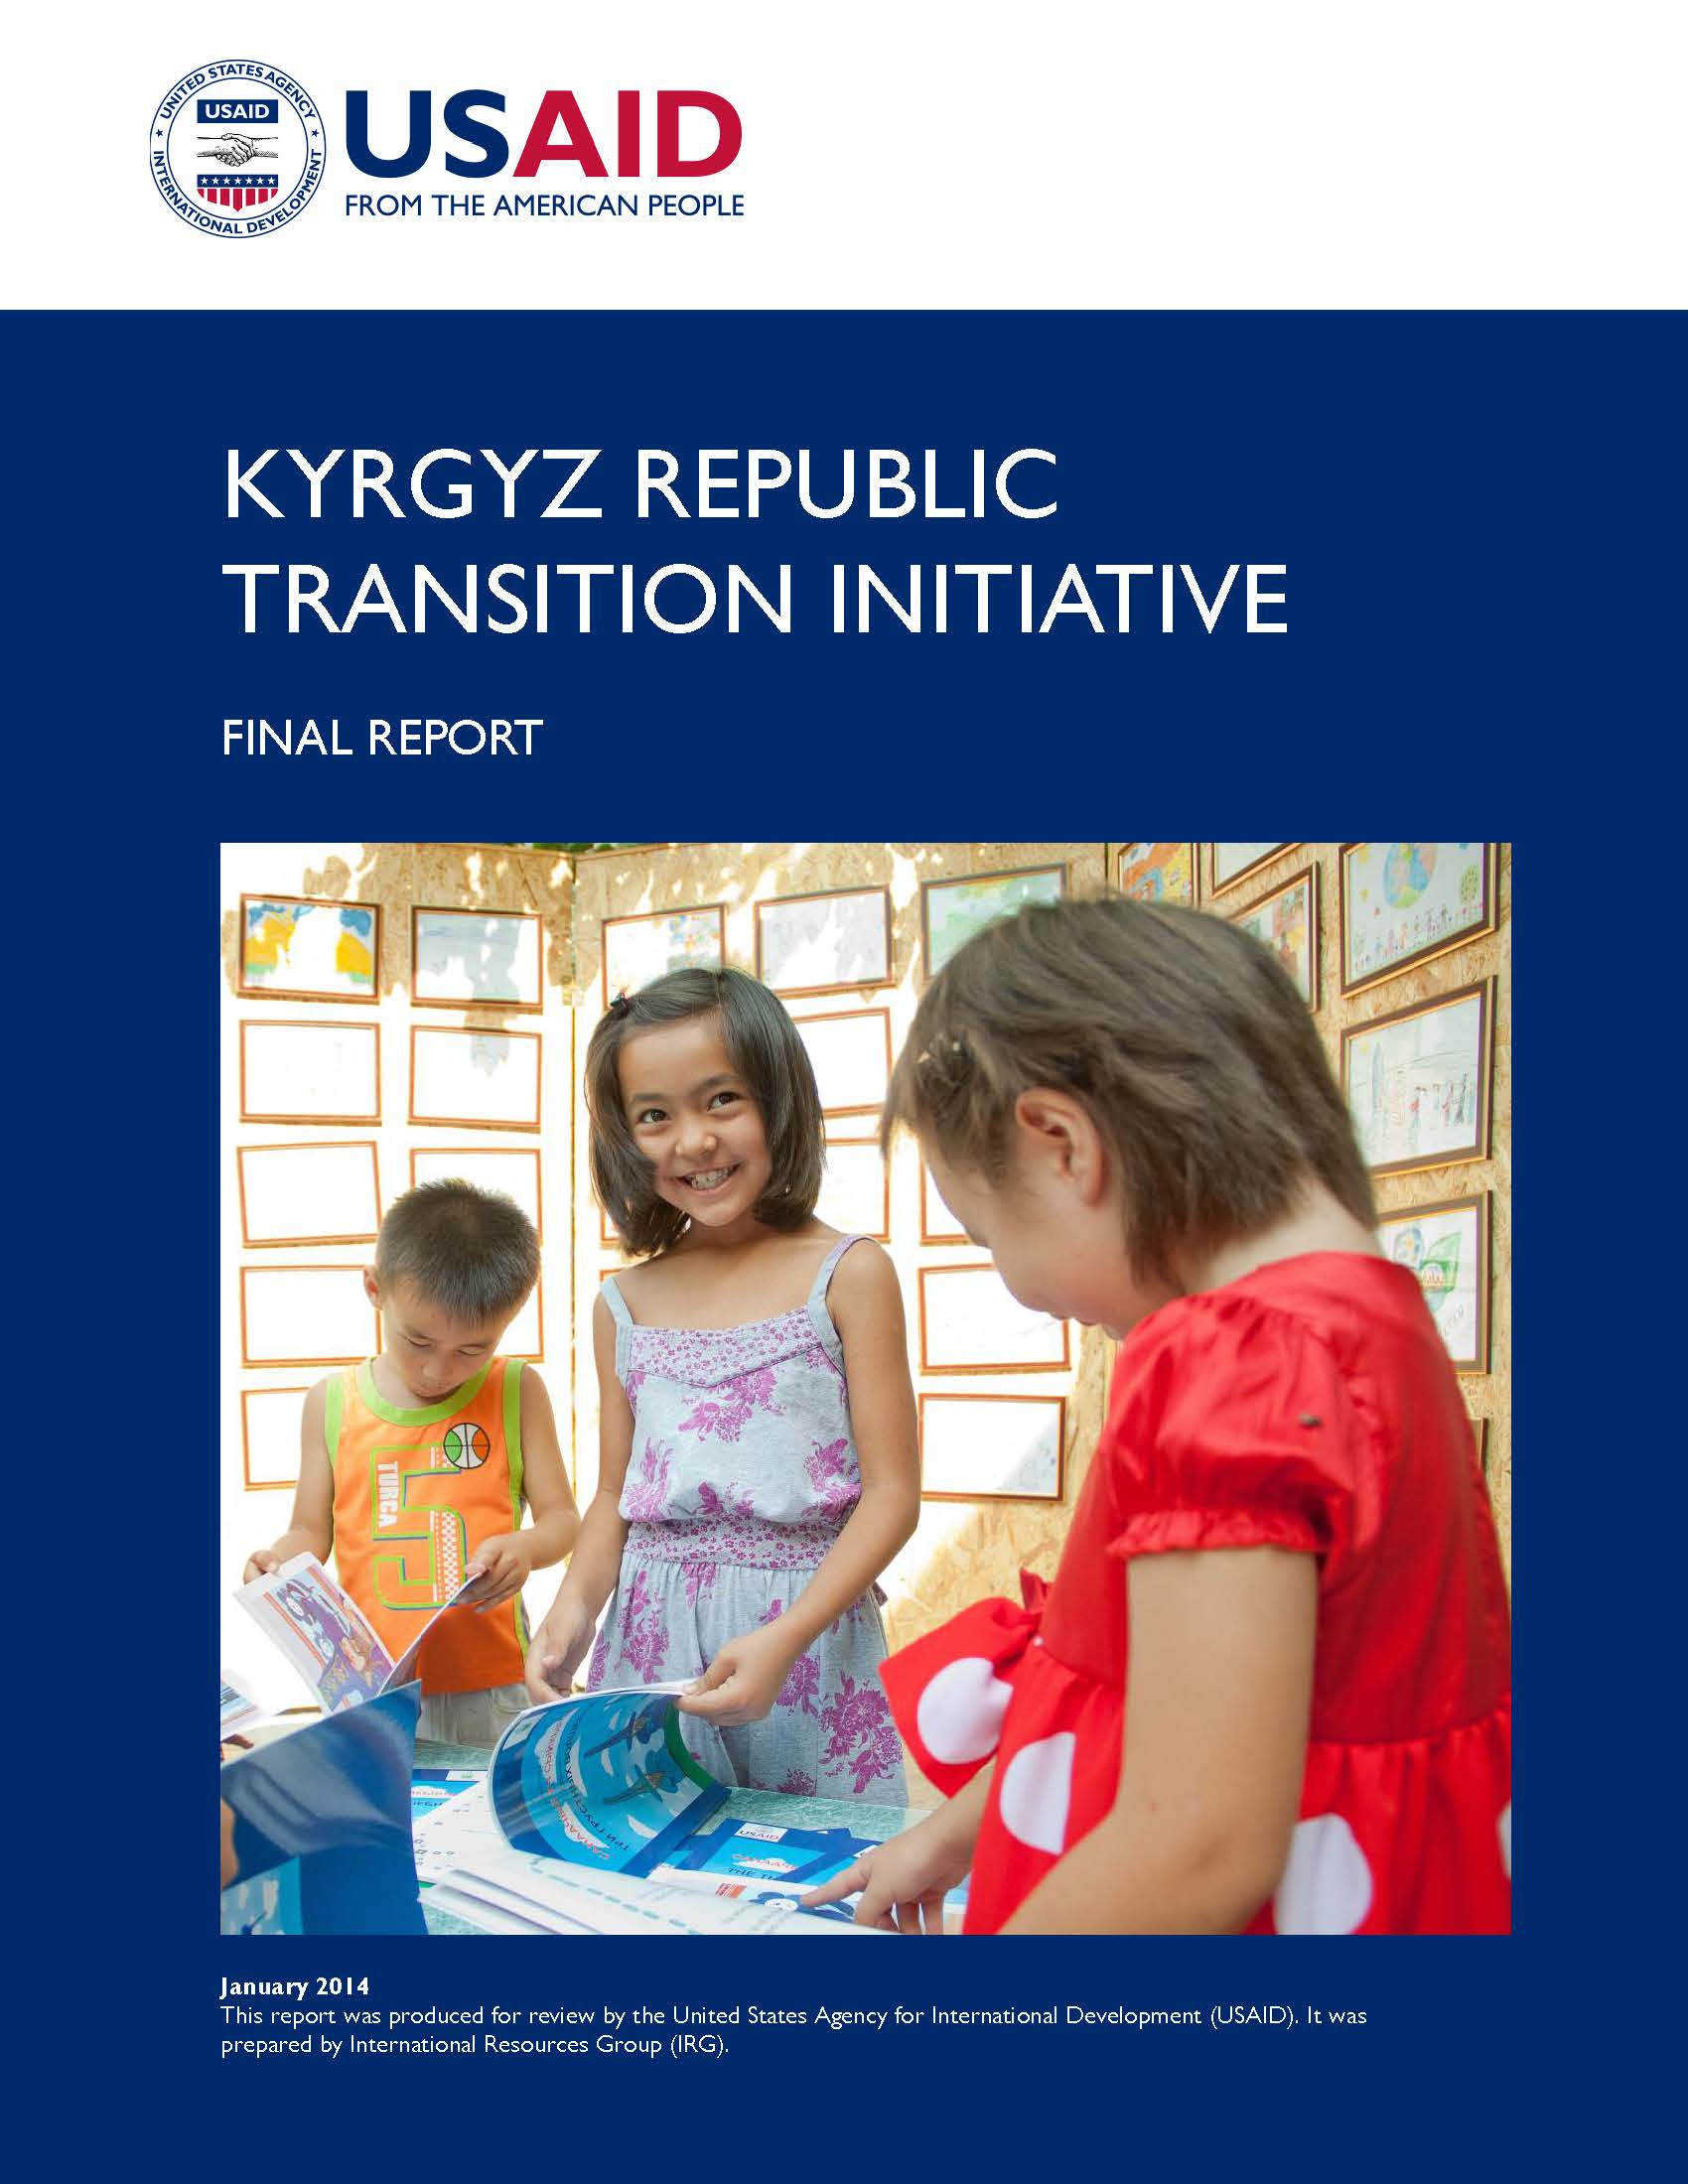 KRTI Kyrgyz Republic Final Report